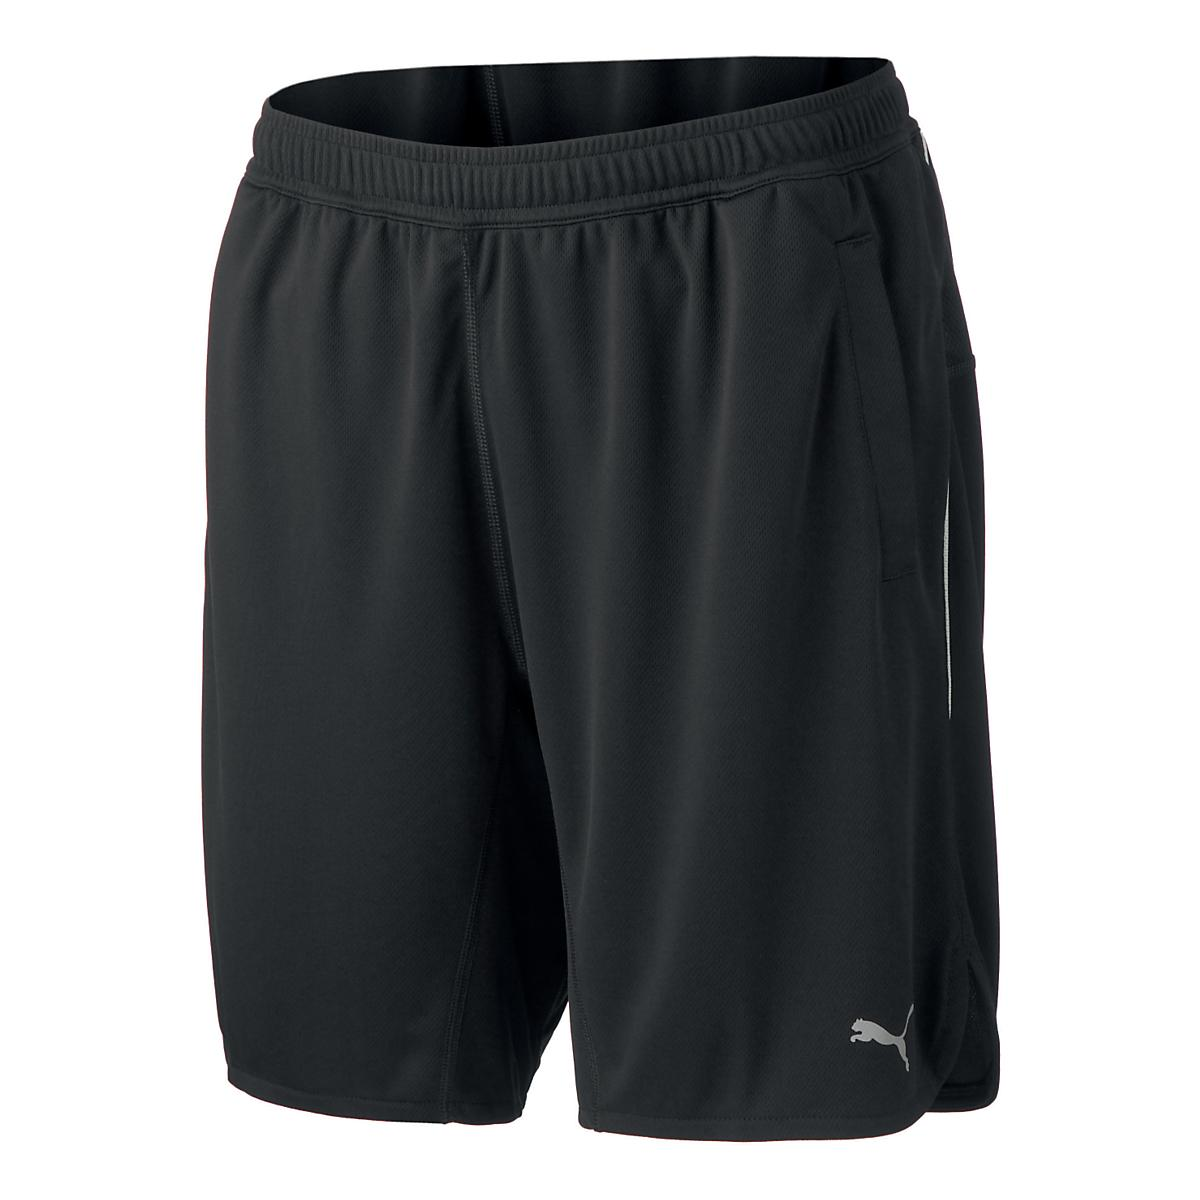 "Mens PUMA 2 in 1 9"" Shorts at Road Runner Sports"